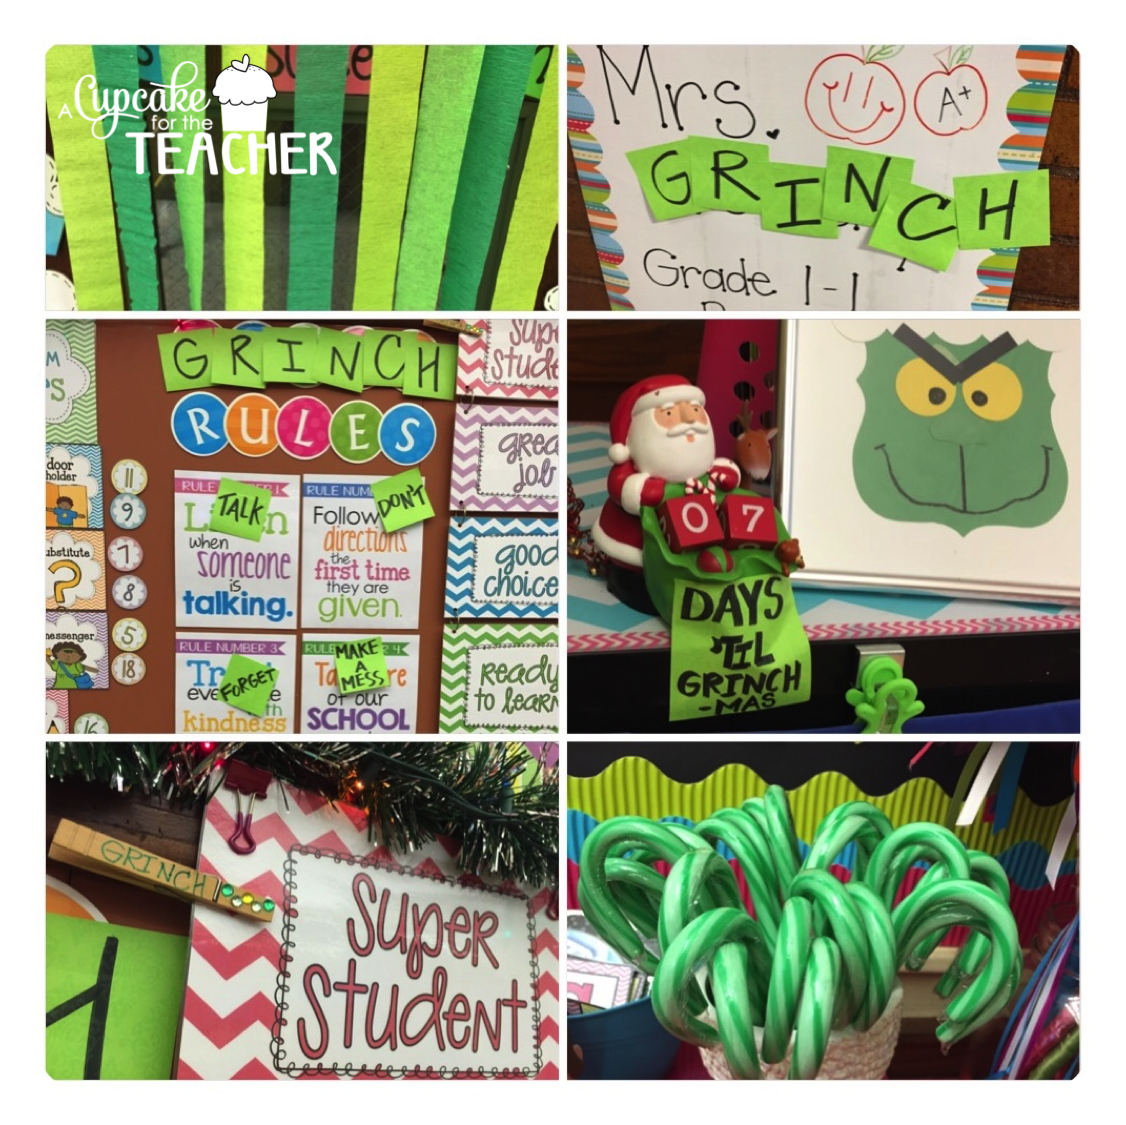 3rd Annual Grinch Day A Cupcake For The Teacher